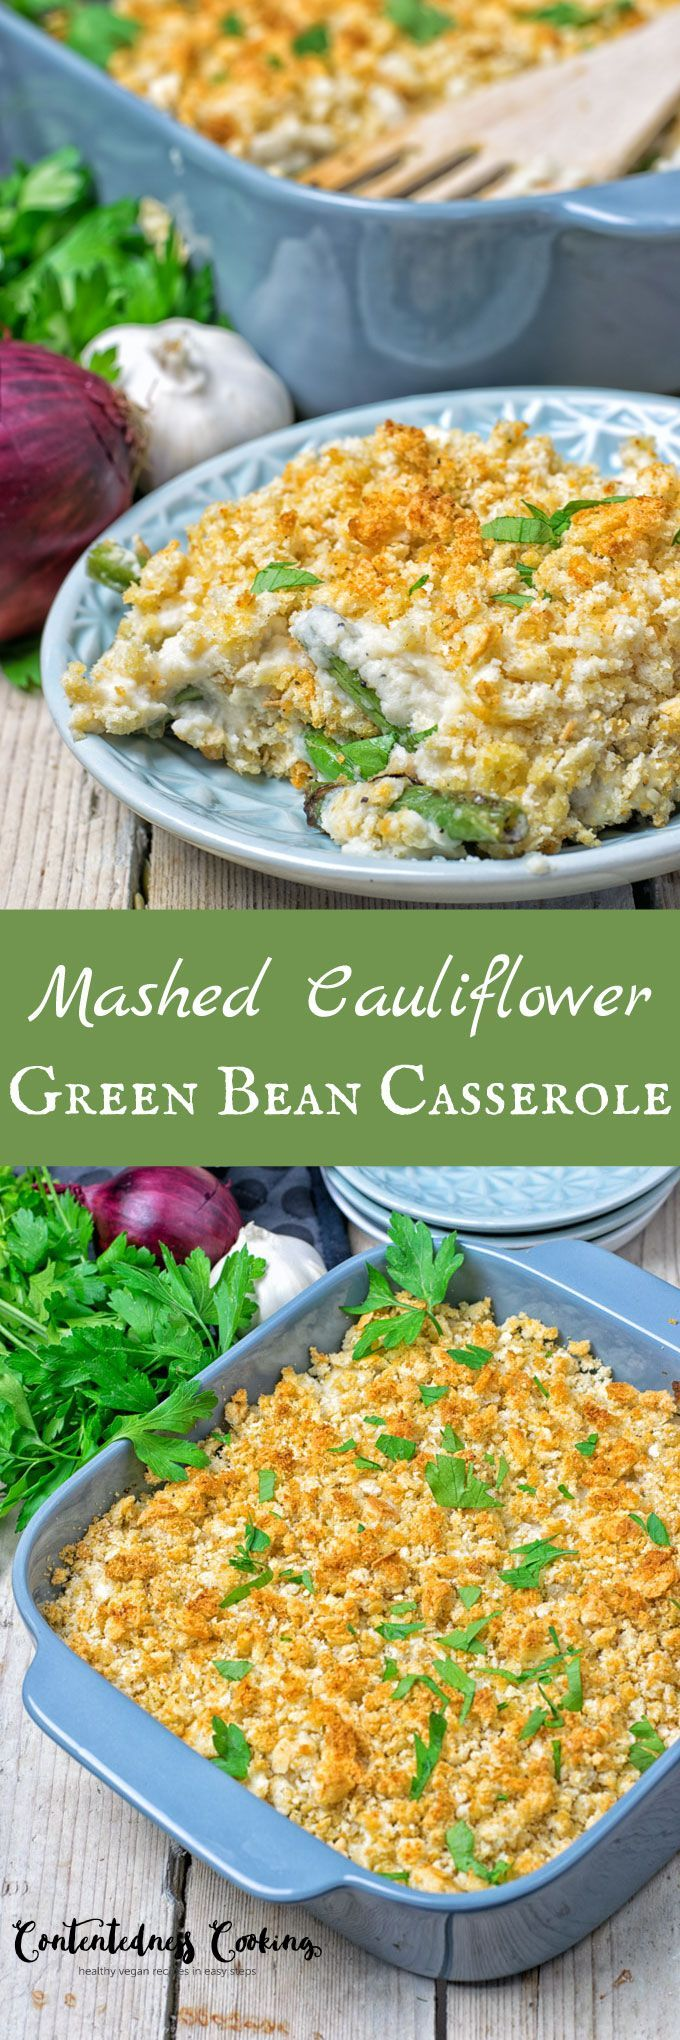 Mashed Cauliflower Green Bean Casserole with just 6 ingredients and made in 3 easy steps. Treat yourself to the best delicious vegan comfort food ever. Perfect for an amazing and cozy dinner or lunch!